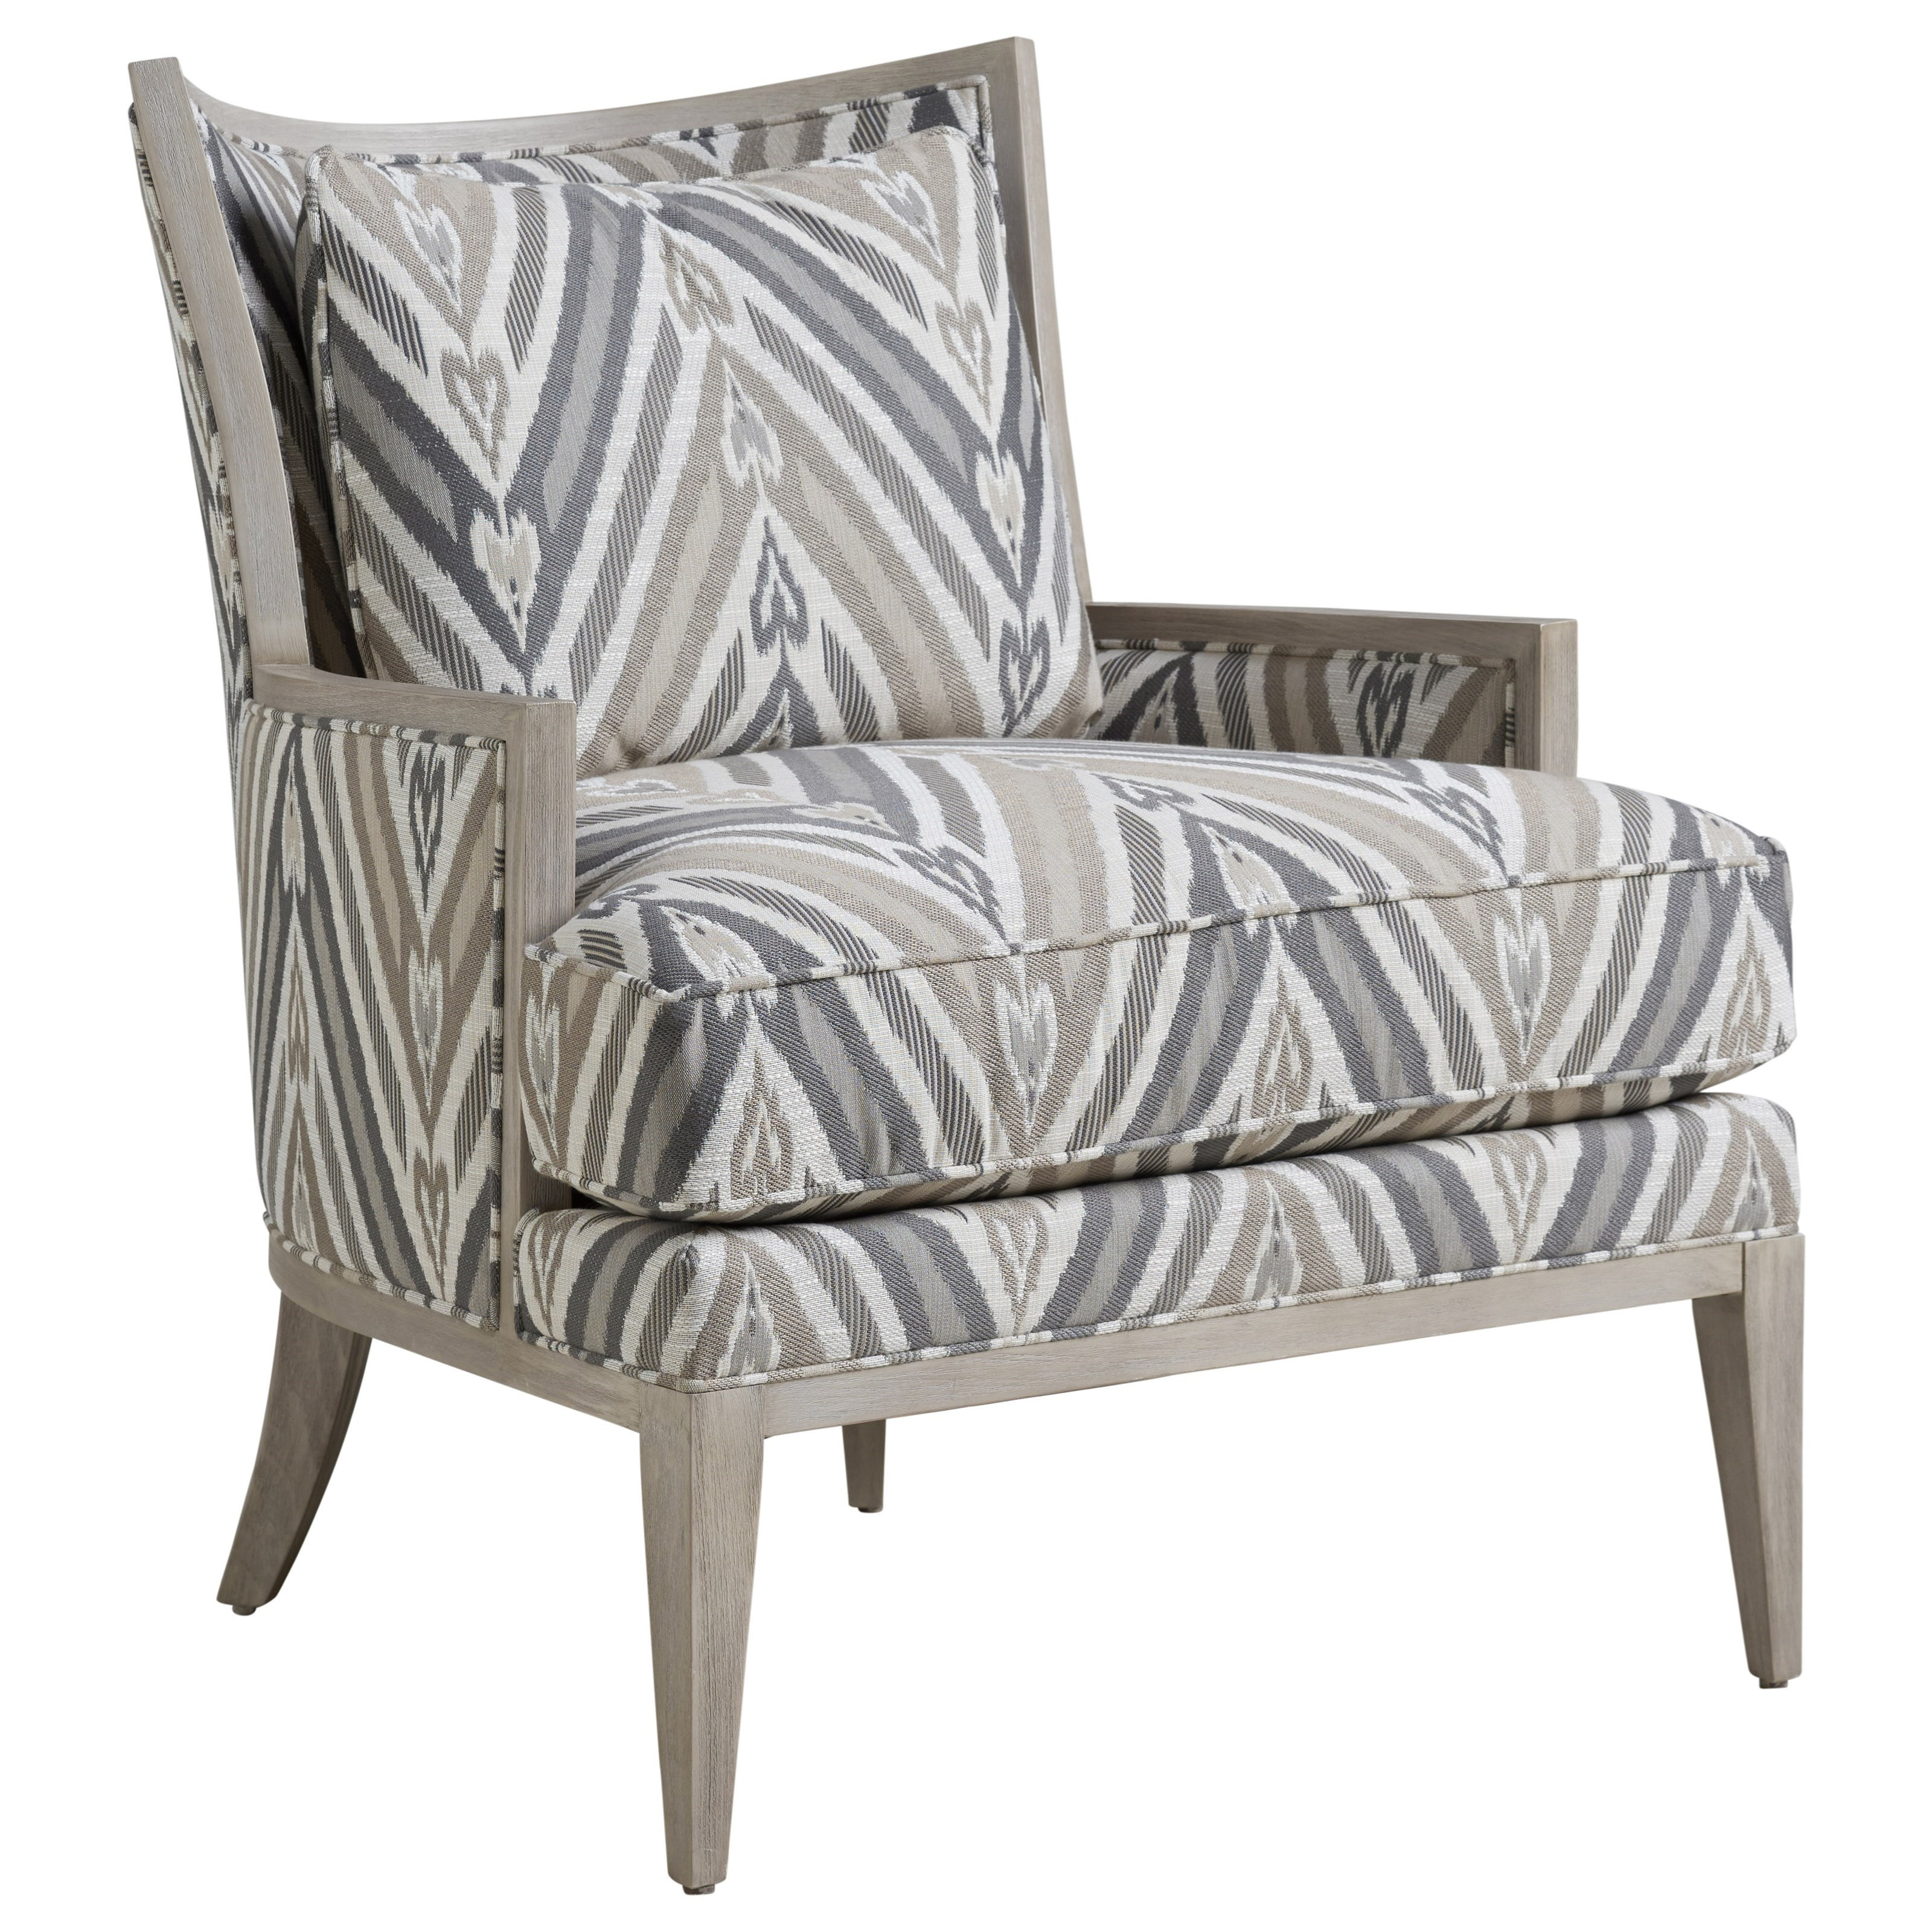 Barclay Butera Upholstery Atwood Occasional Chair by Barclay Butera at Baer's Furniture